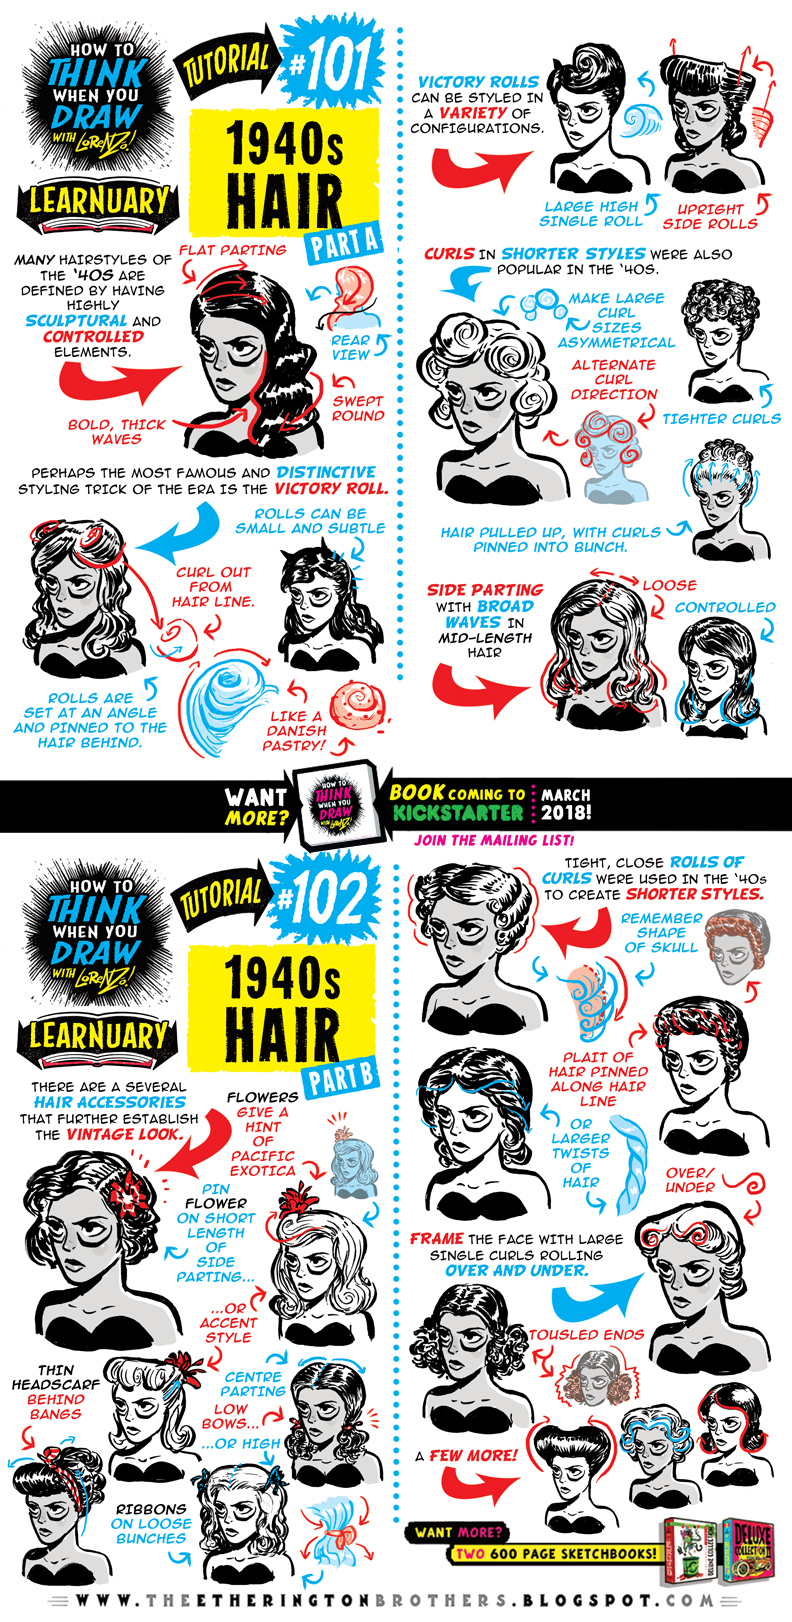 How to draw 1940s HAIR tutorial by STUDIOBLINKTWICE